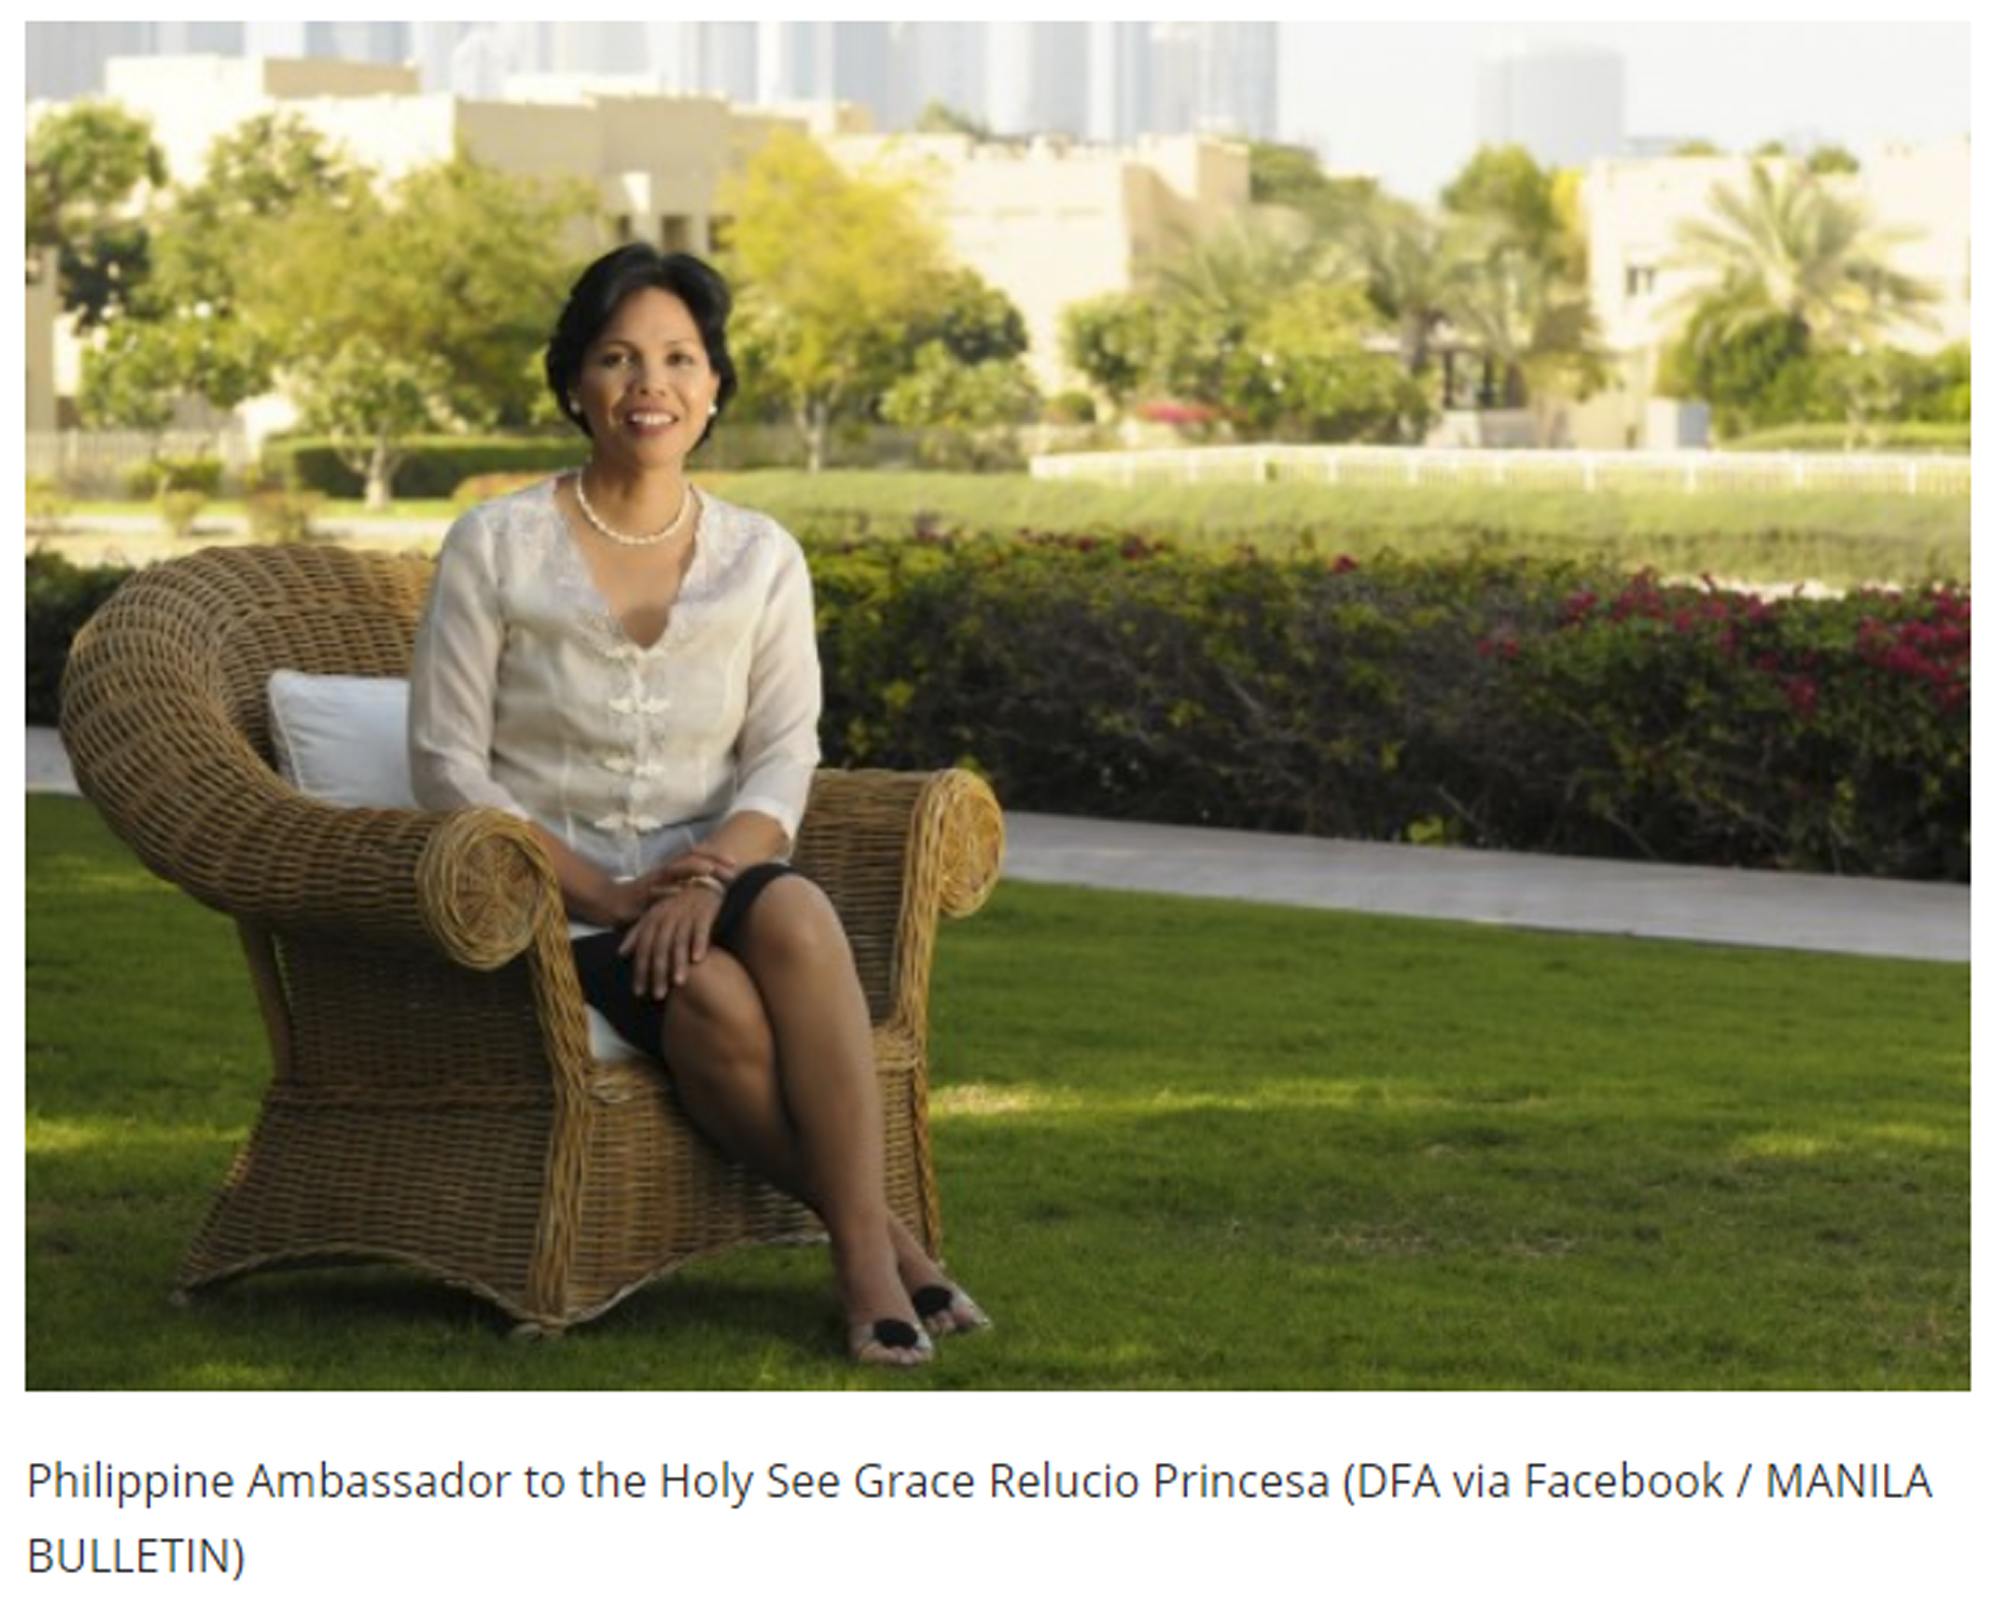 PH ambassador to the Holy See Grace Relucio Princesa assumes post by Leslie Ann Aquino | Manila Bulletin